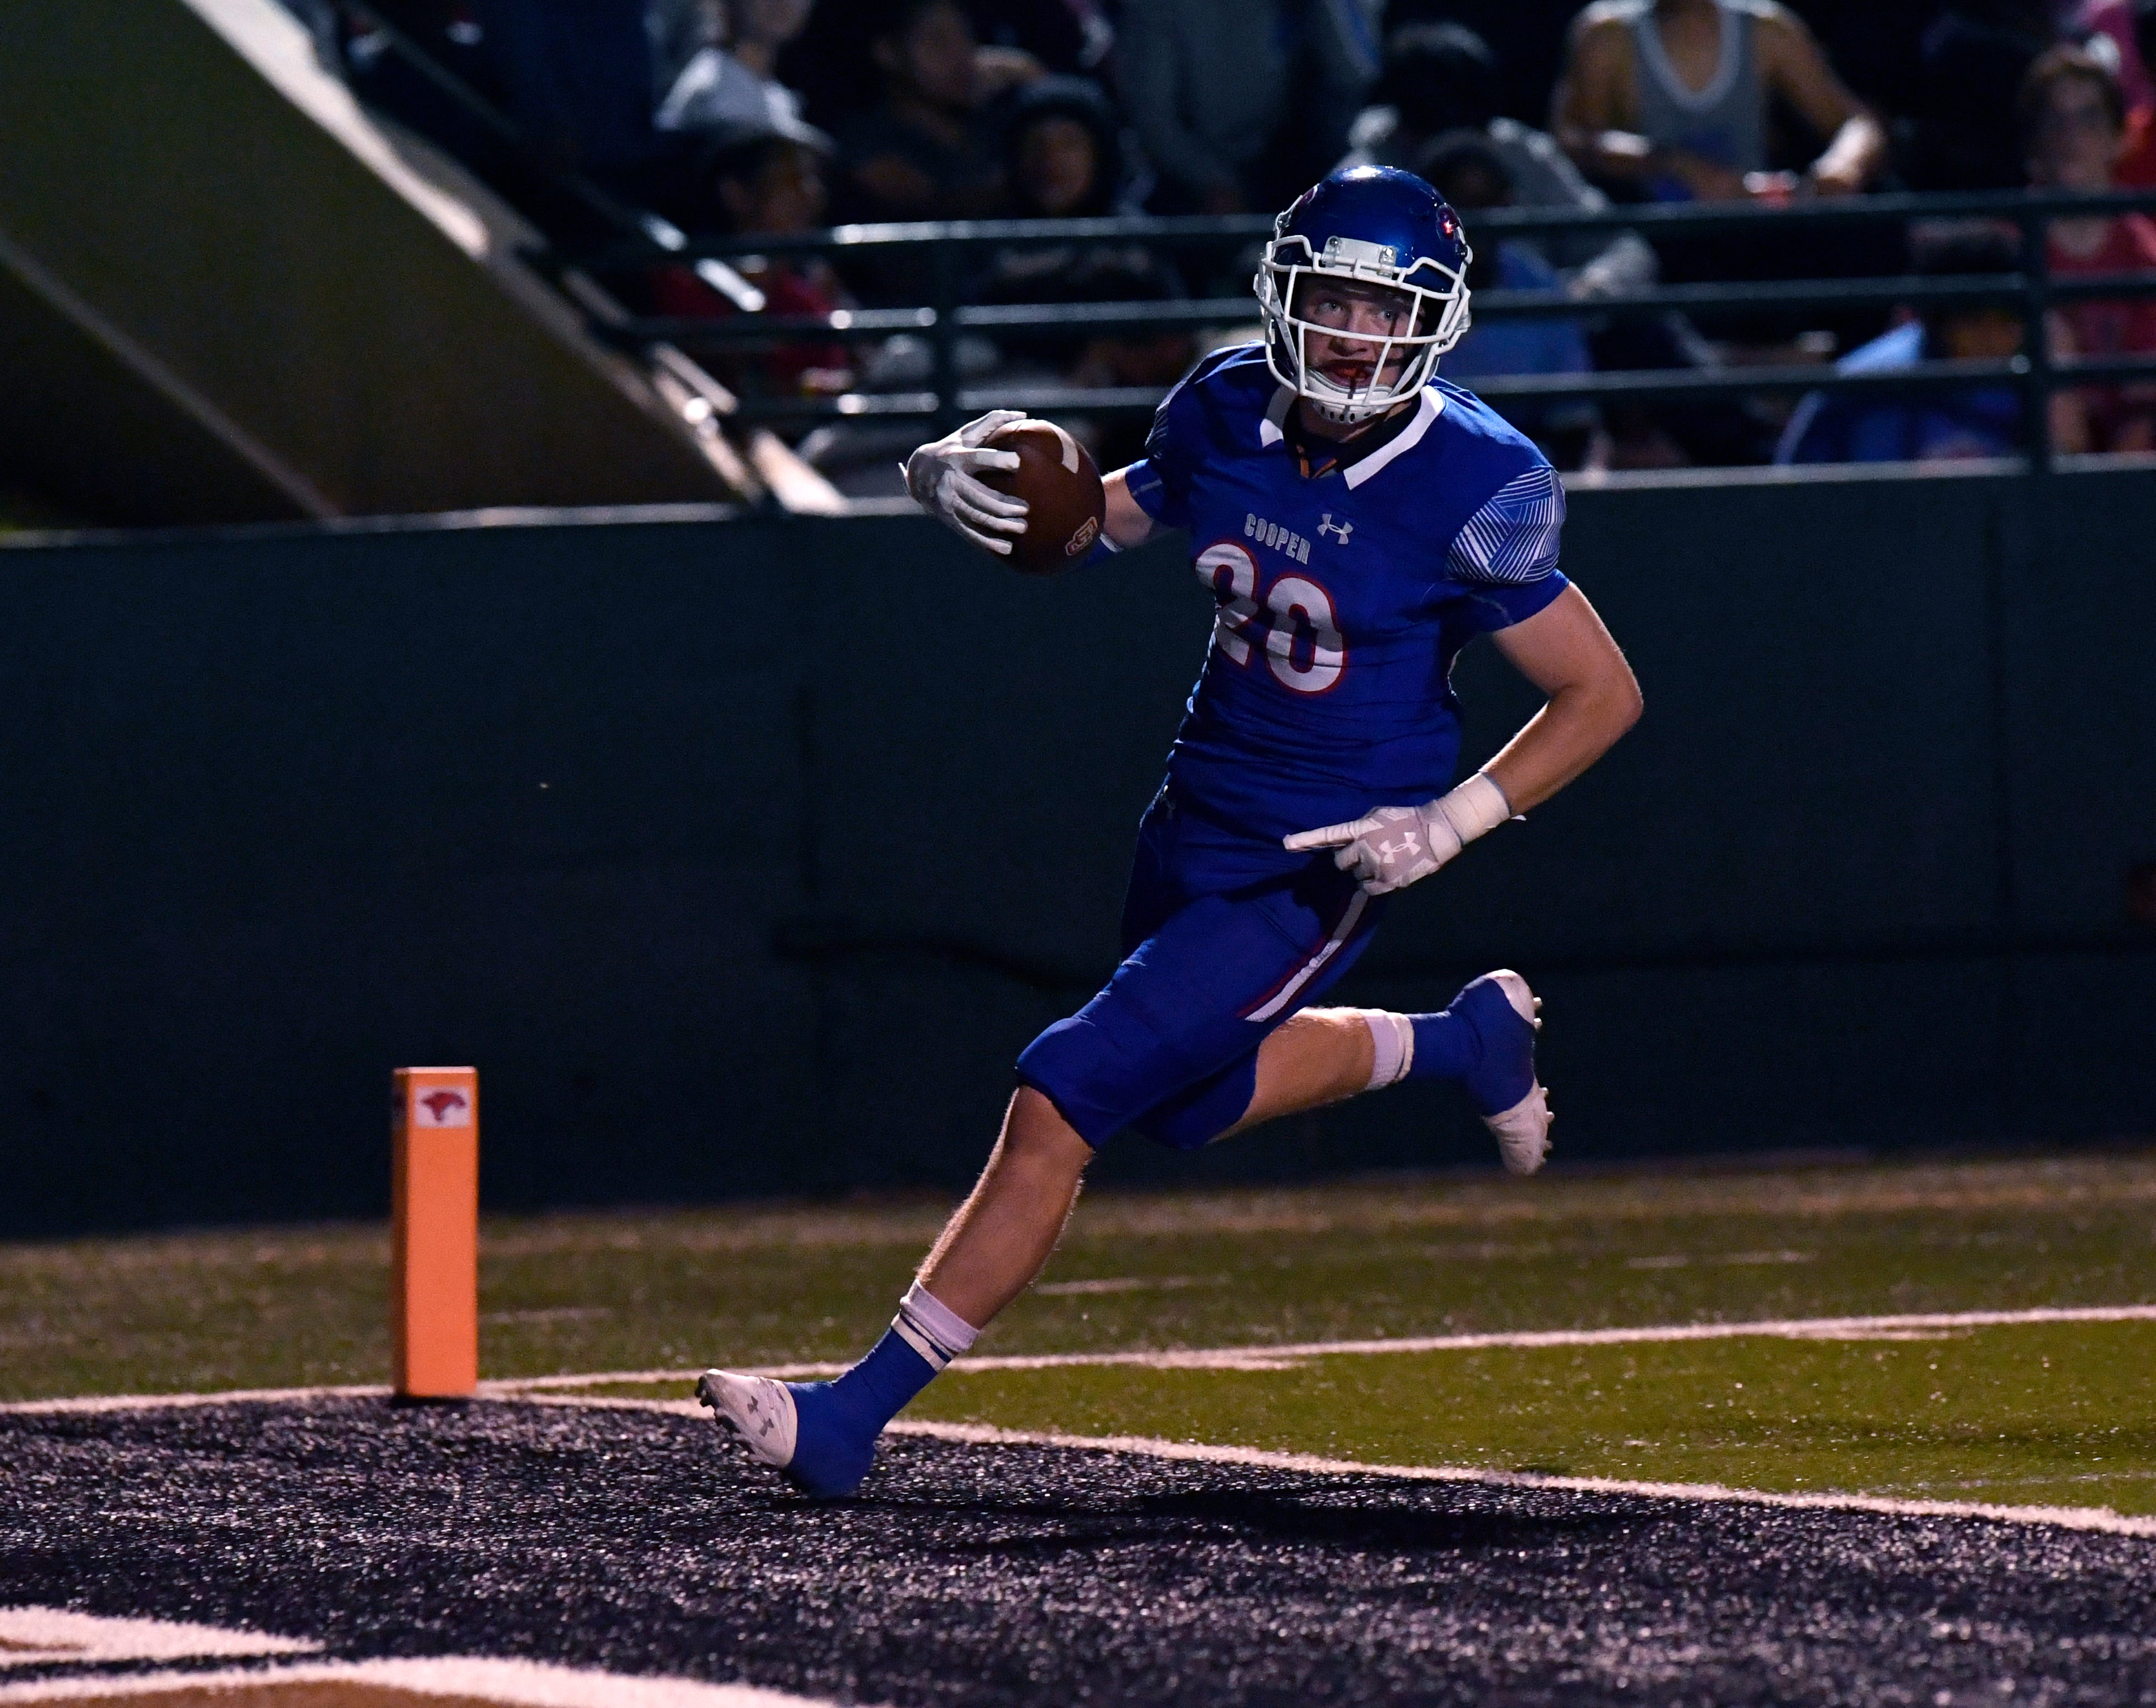 Cooper defensive back Brady Miller scores a touchdown after intercepting a Lubbock Coronado pass and returning it 19 yards. Miller's score helped the Cougars tie the game at 14-14 late in the first quarter. Coronado won the District 2-5A Division I game 42-23 on Friday at Shotwell Stadium.